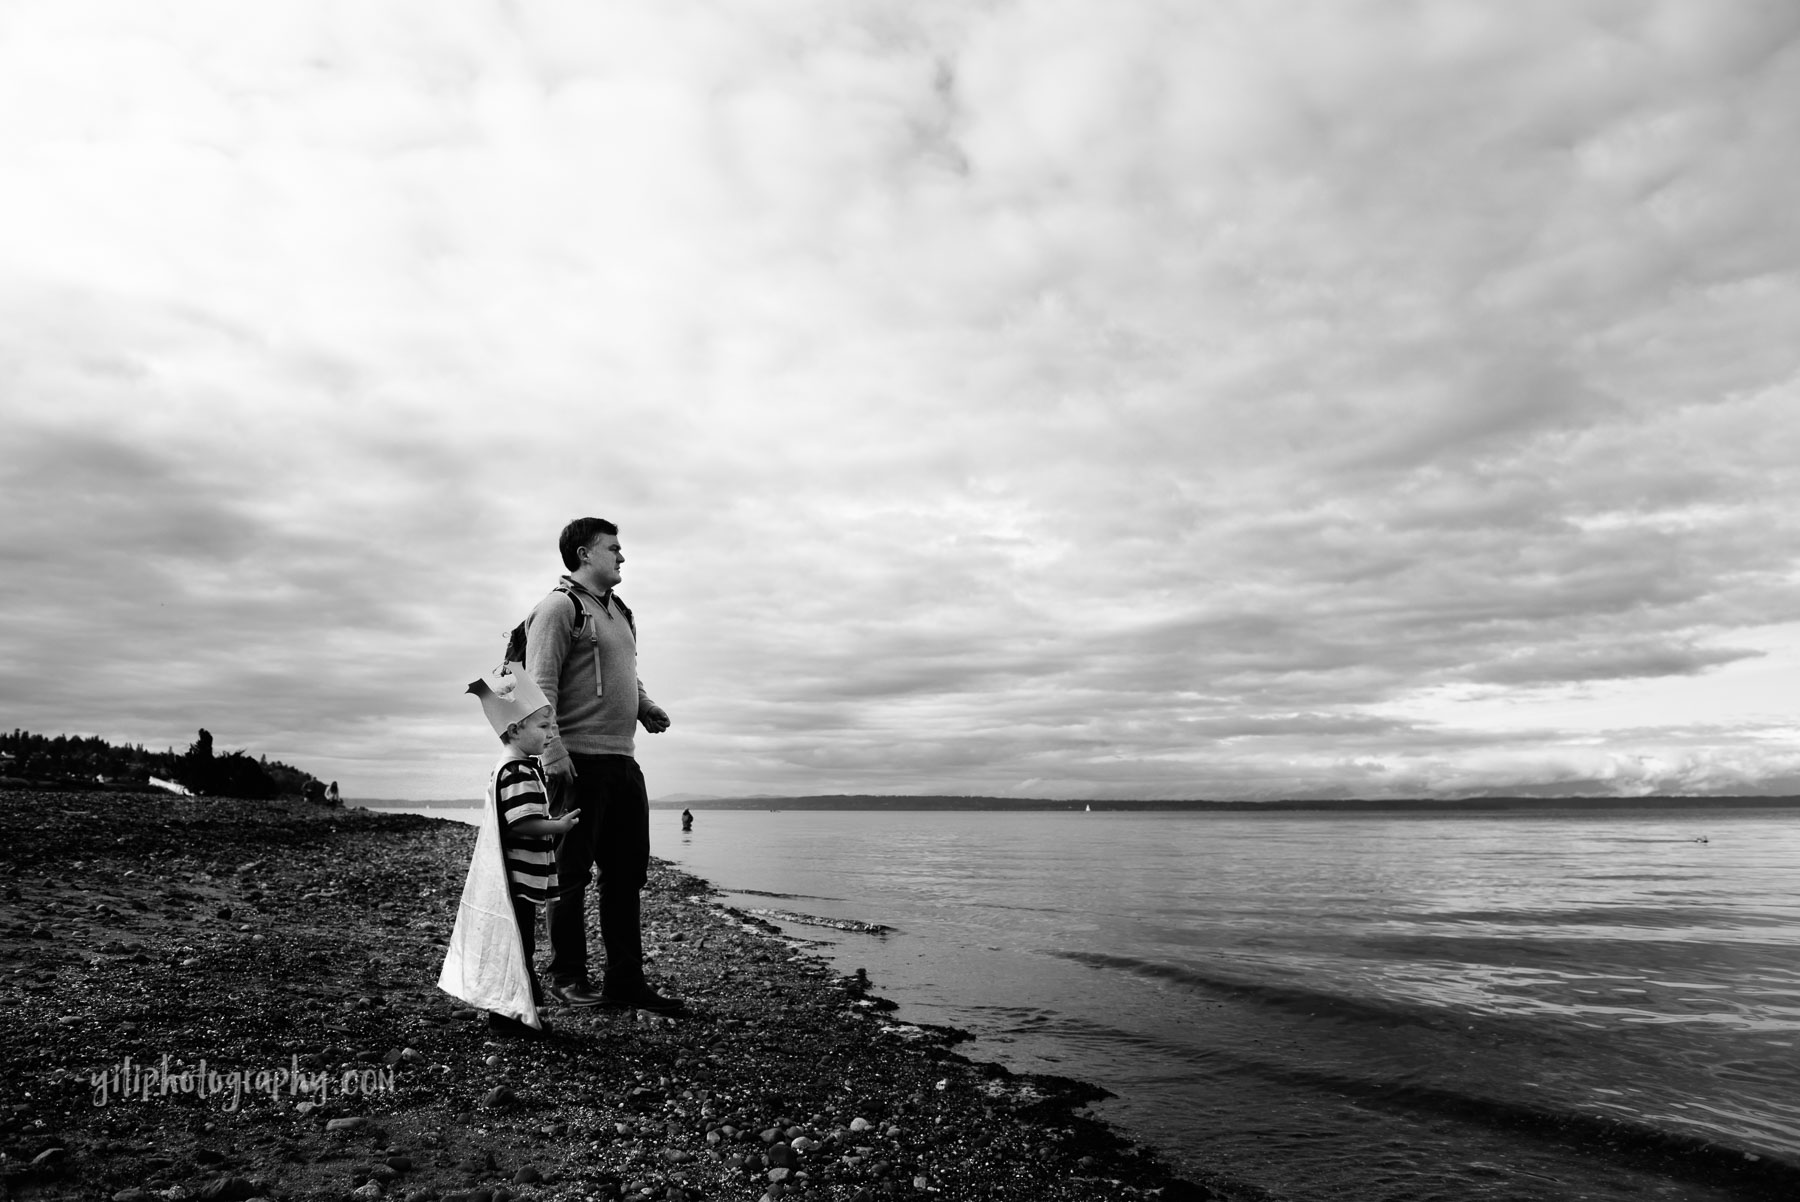 Father and son gazing out at ocean with dramatic clouds